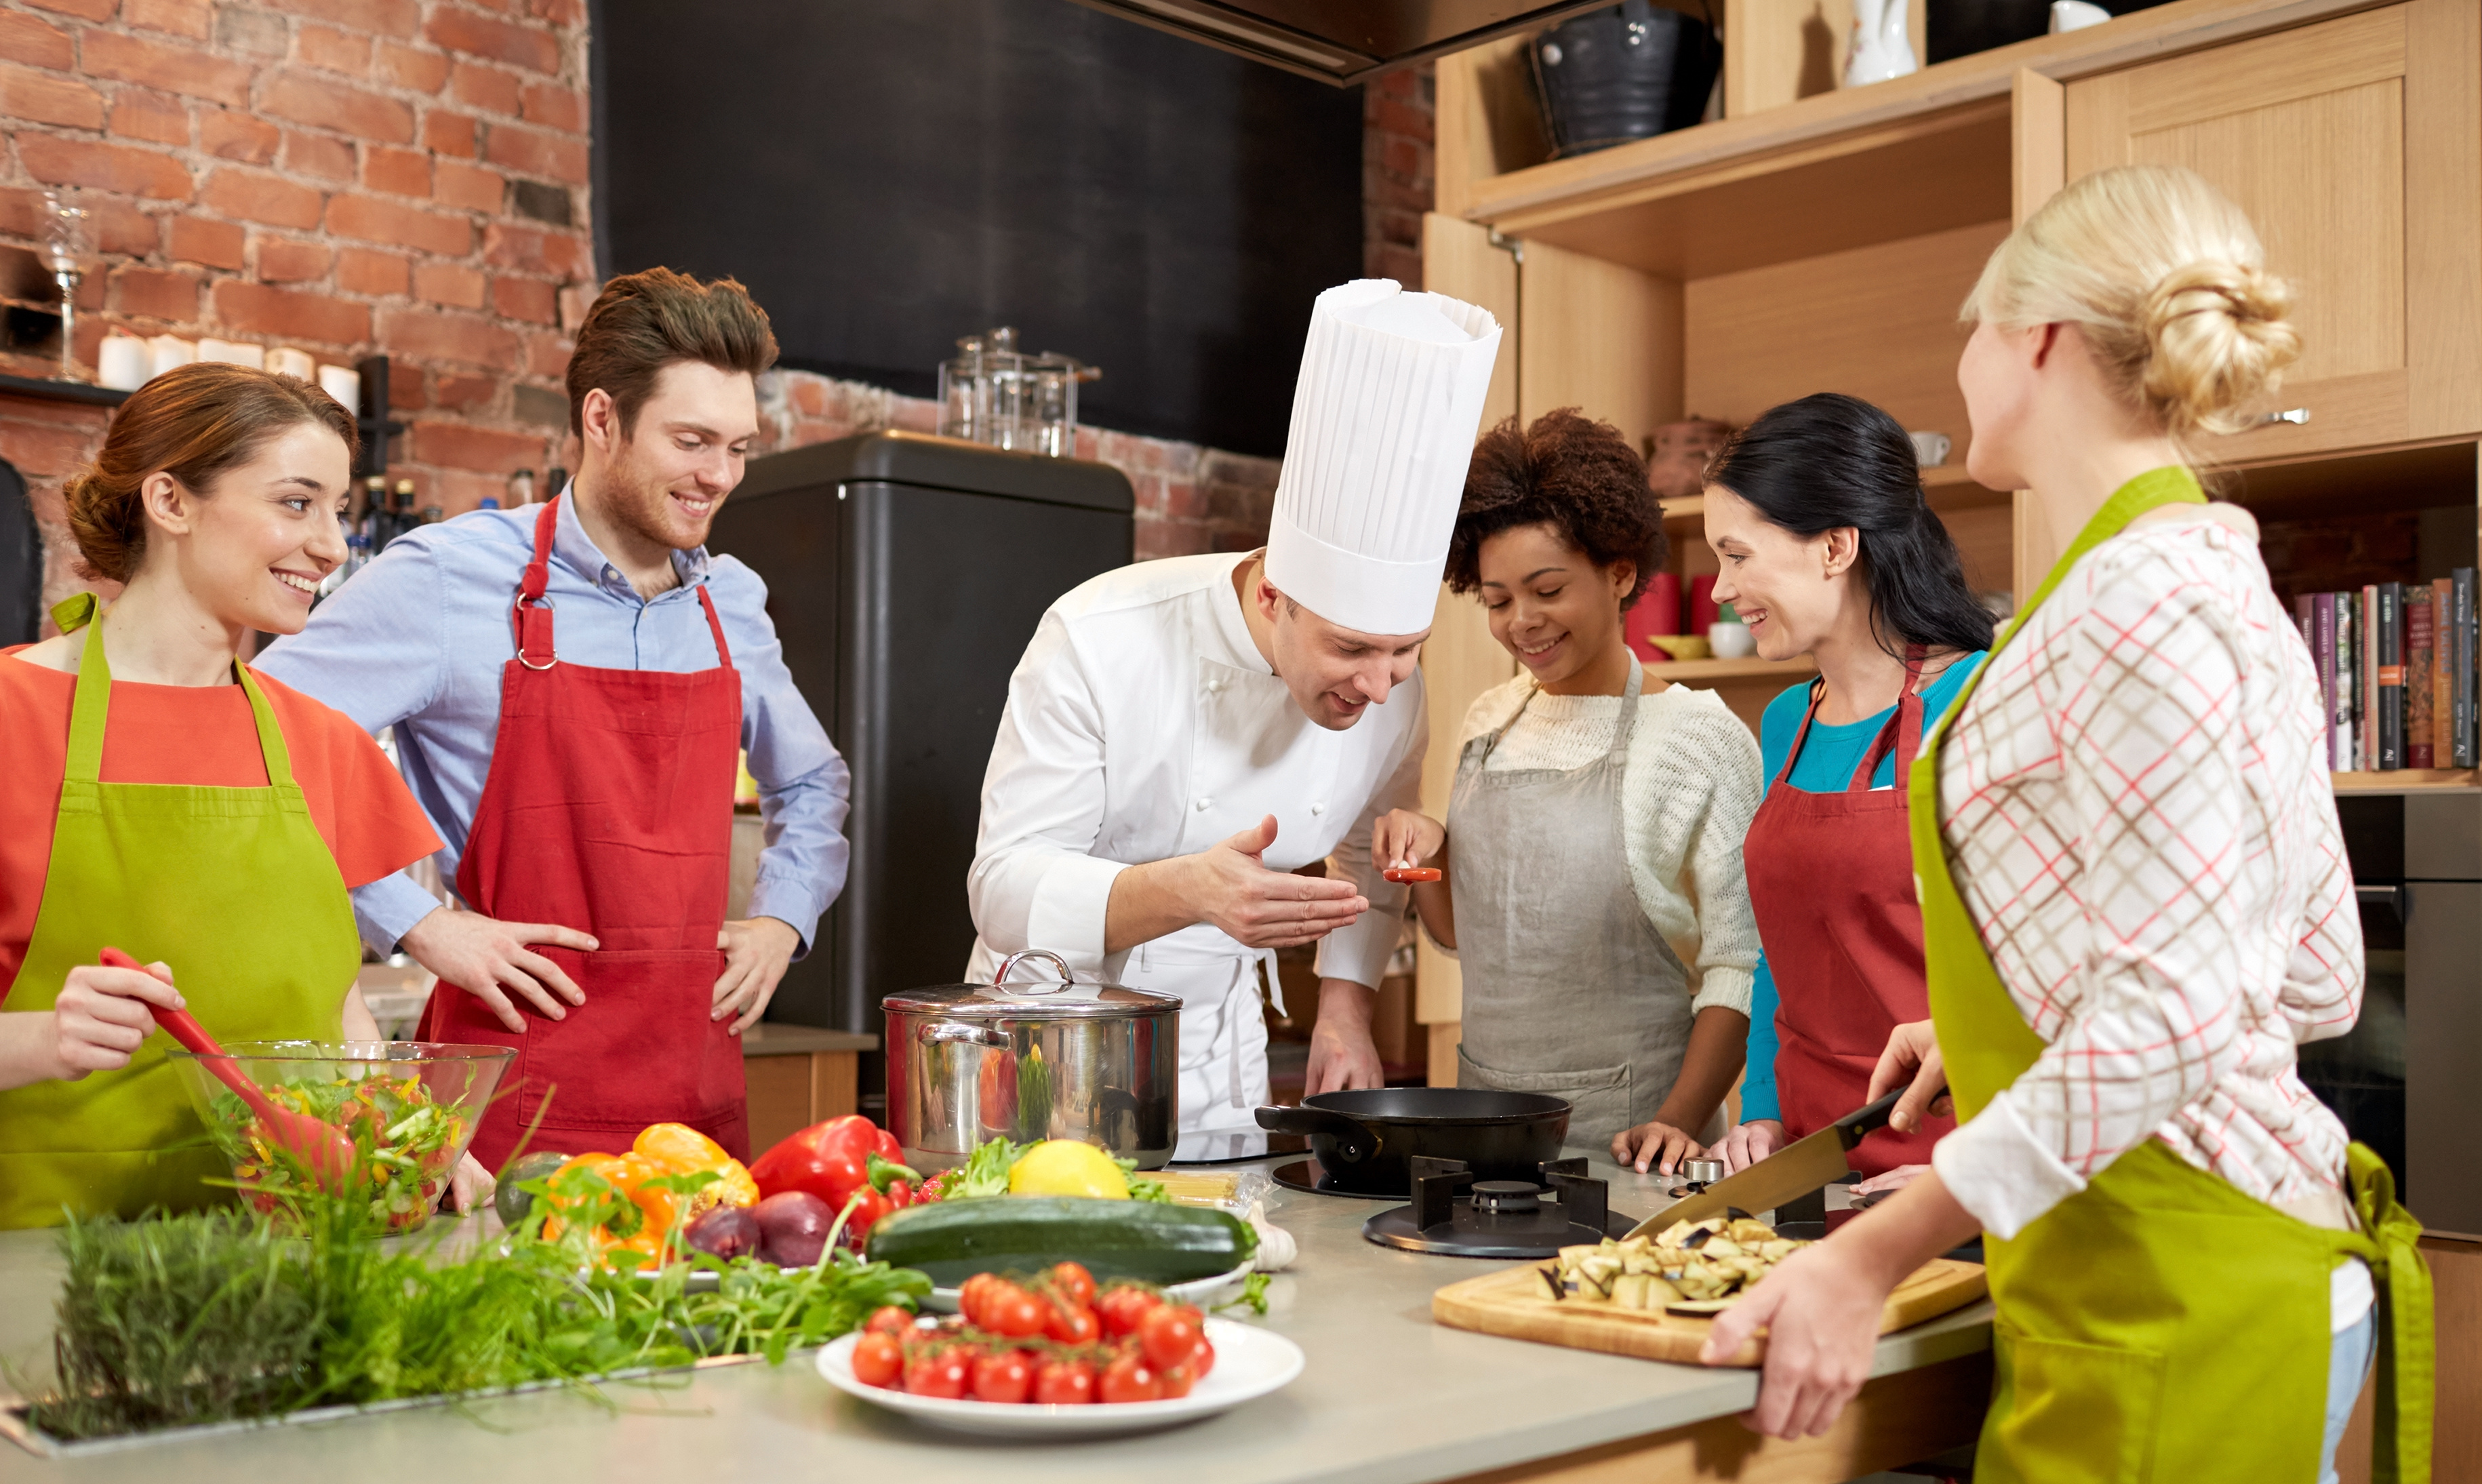 Enjoy your Italian Cooking class experience!